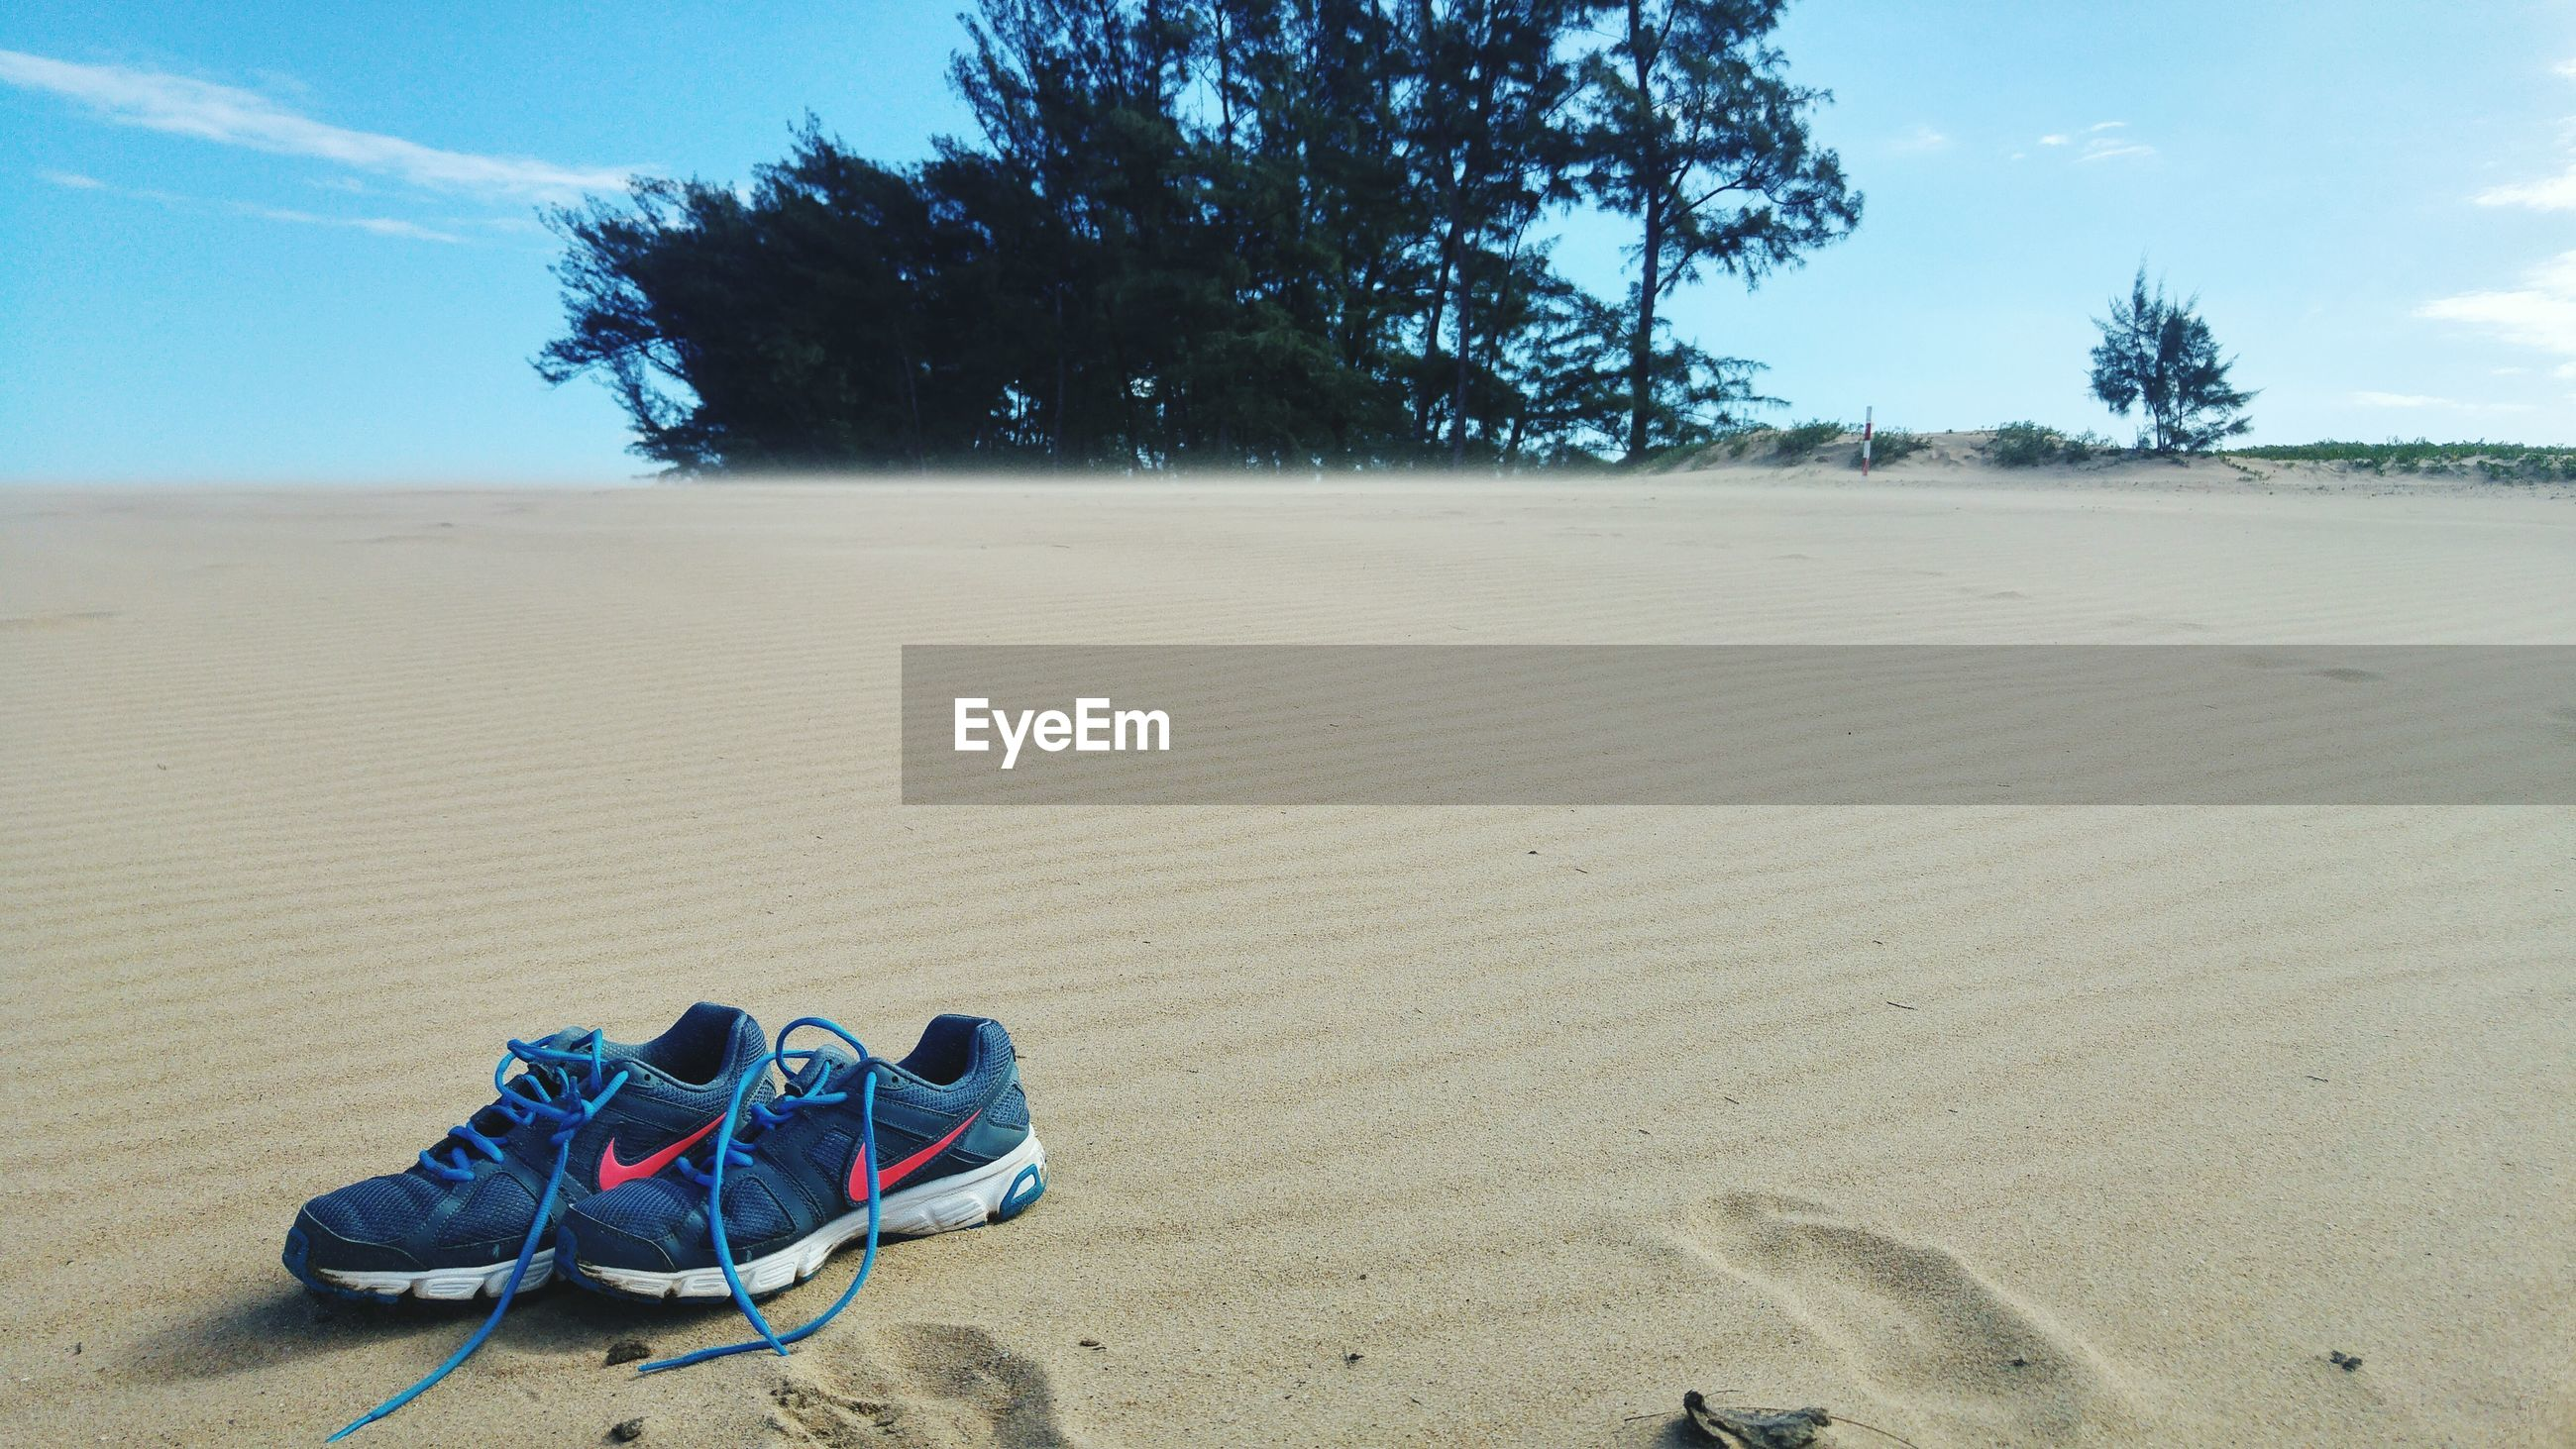 SHOES ON SAND AT BEACH